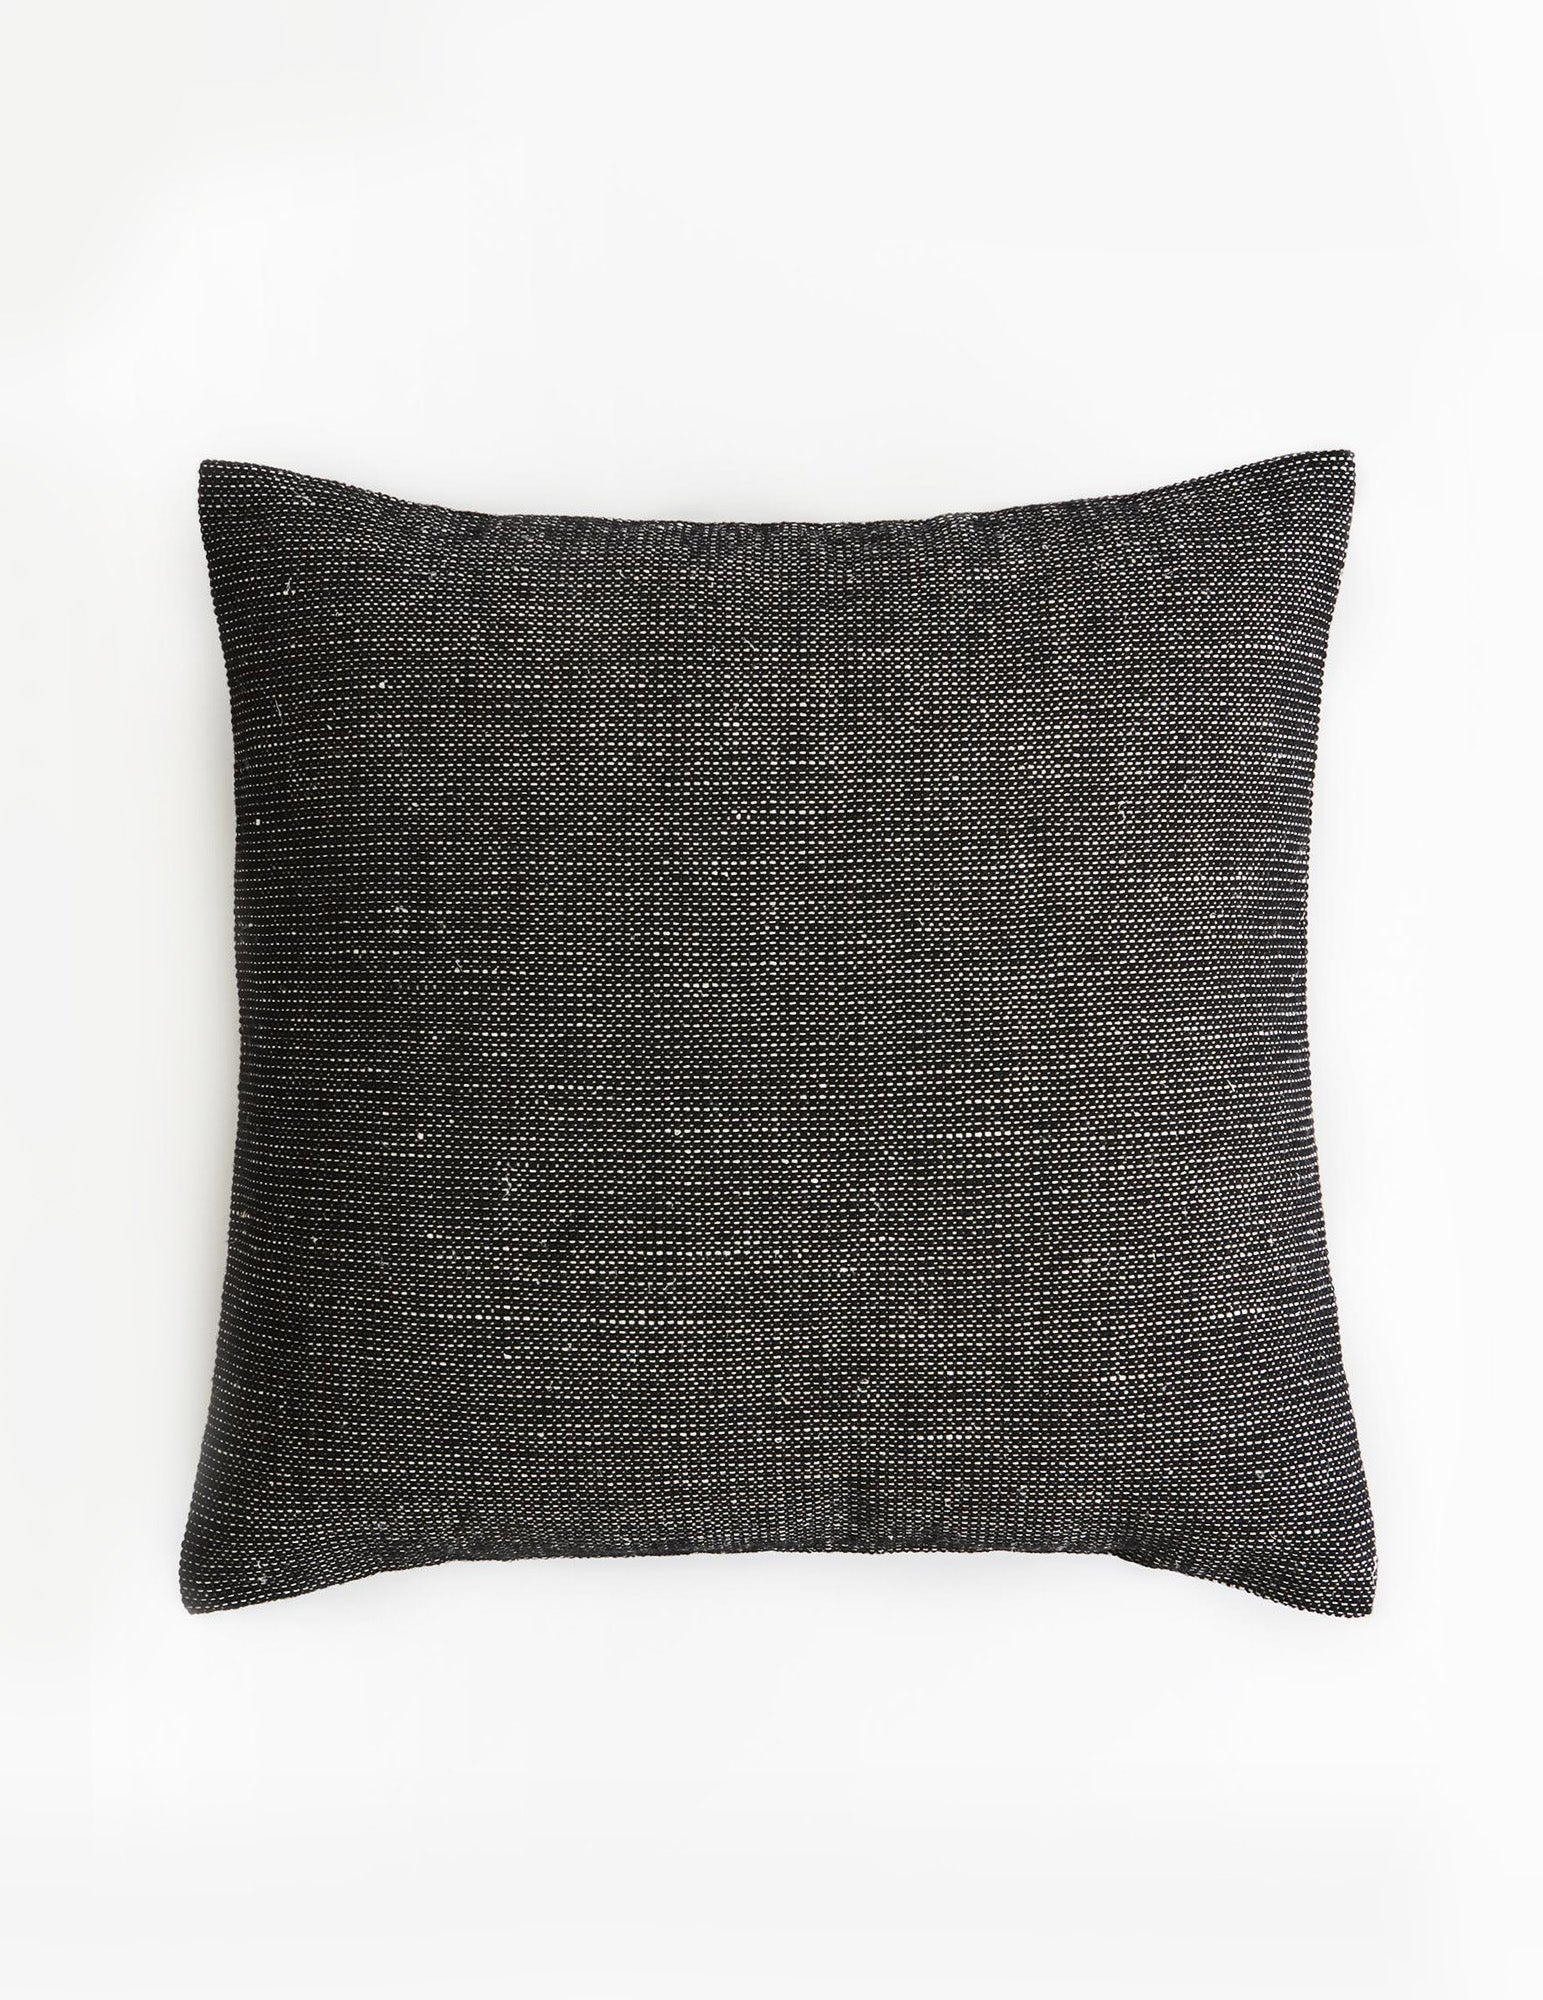 Mourne Dash Cushion - Black and White